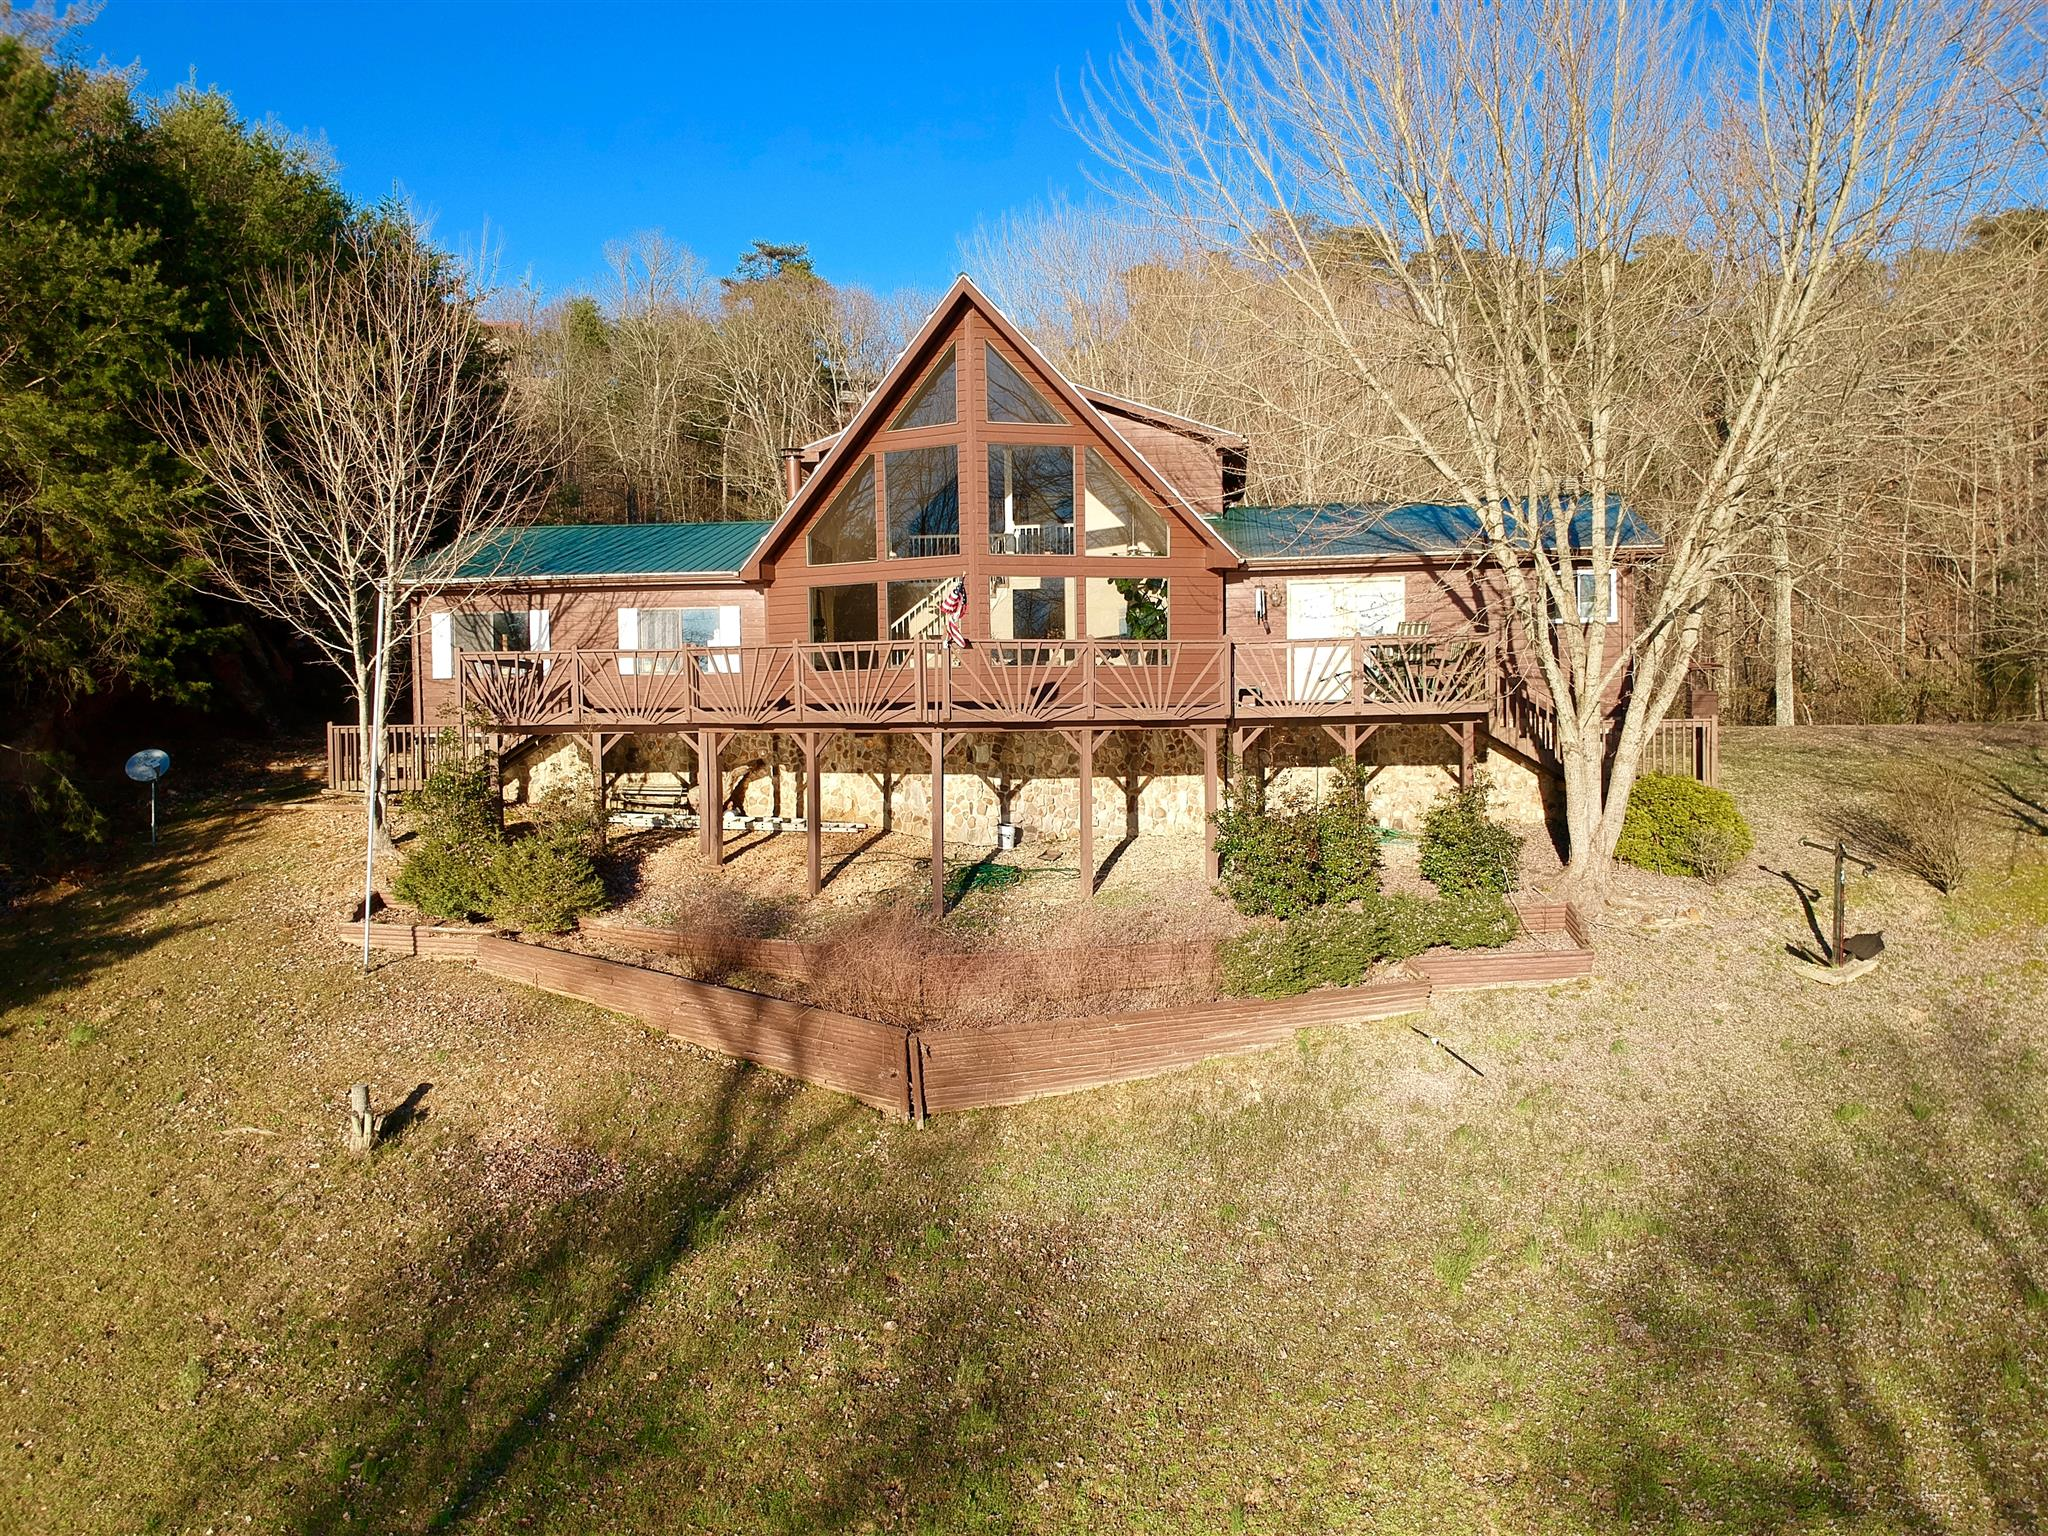 760 Lakefront Dr, Waverly, TN 37185 - Waverly, TN real estate listing